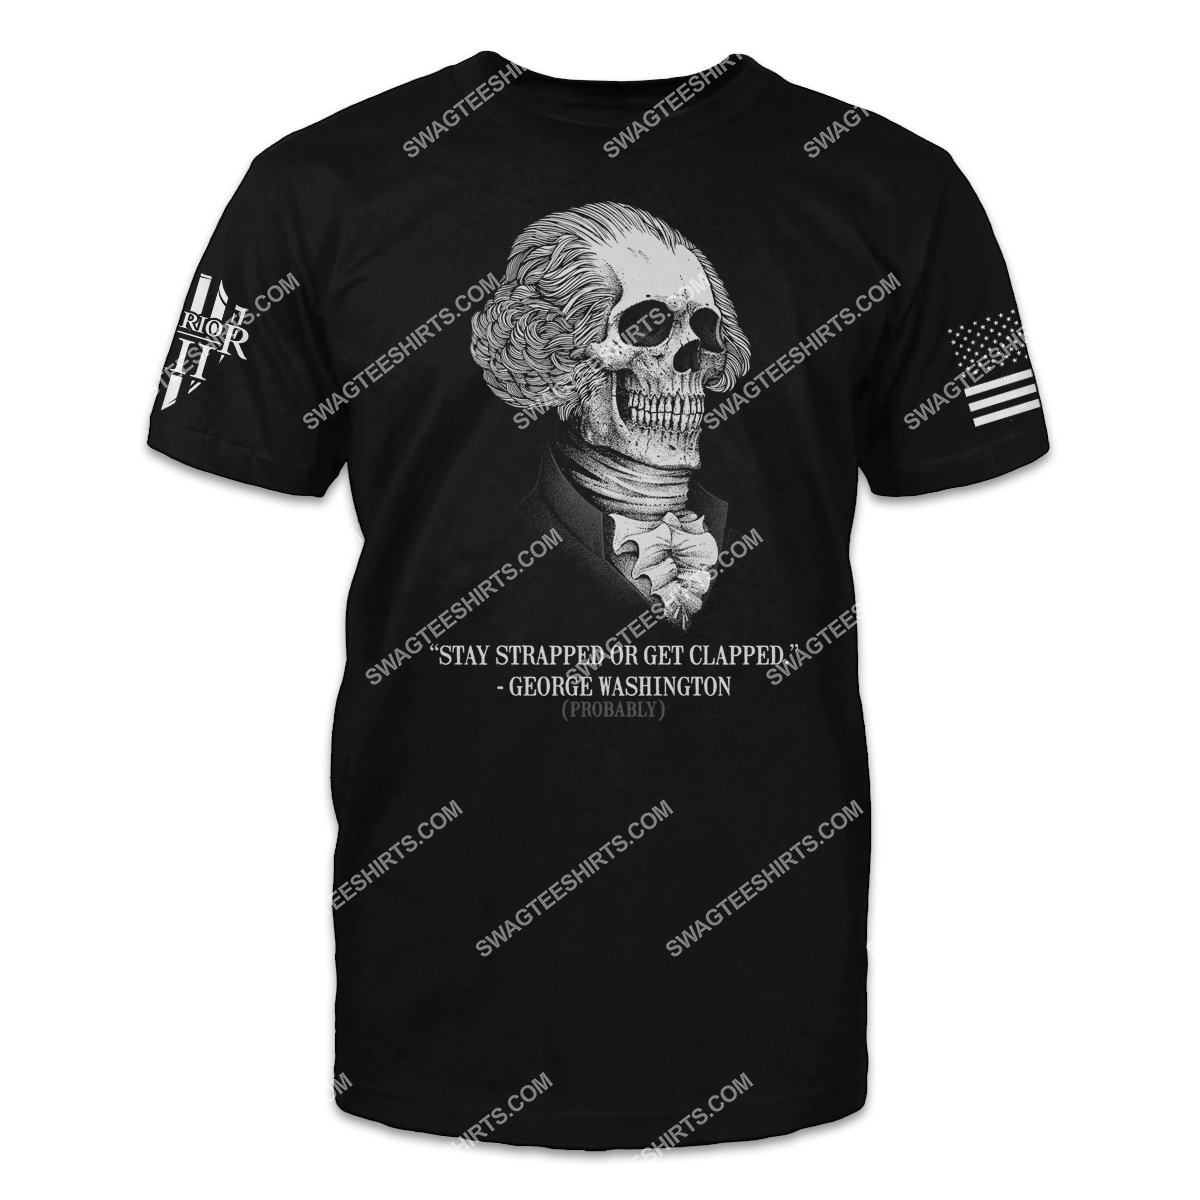 stay strapped or get clapped george washington shirt 1 - Copy (3)